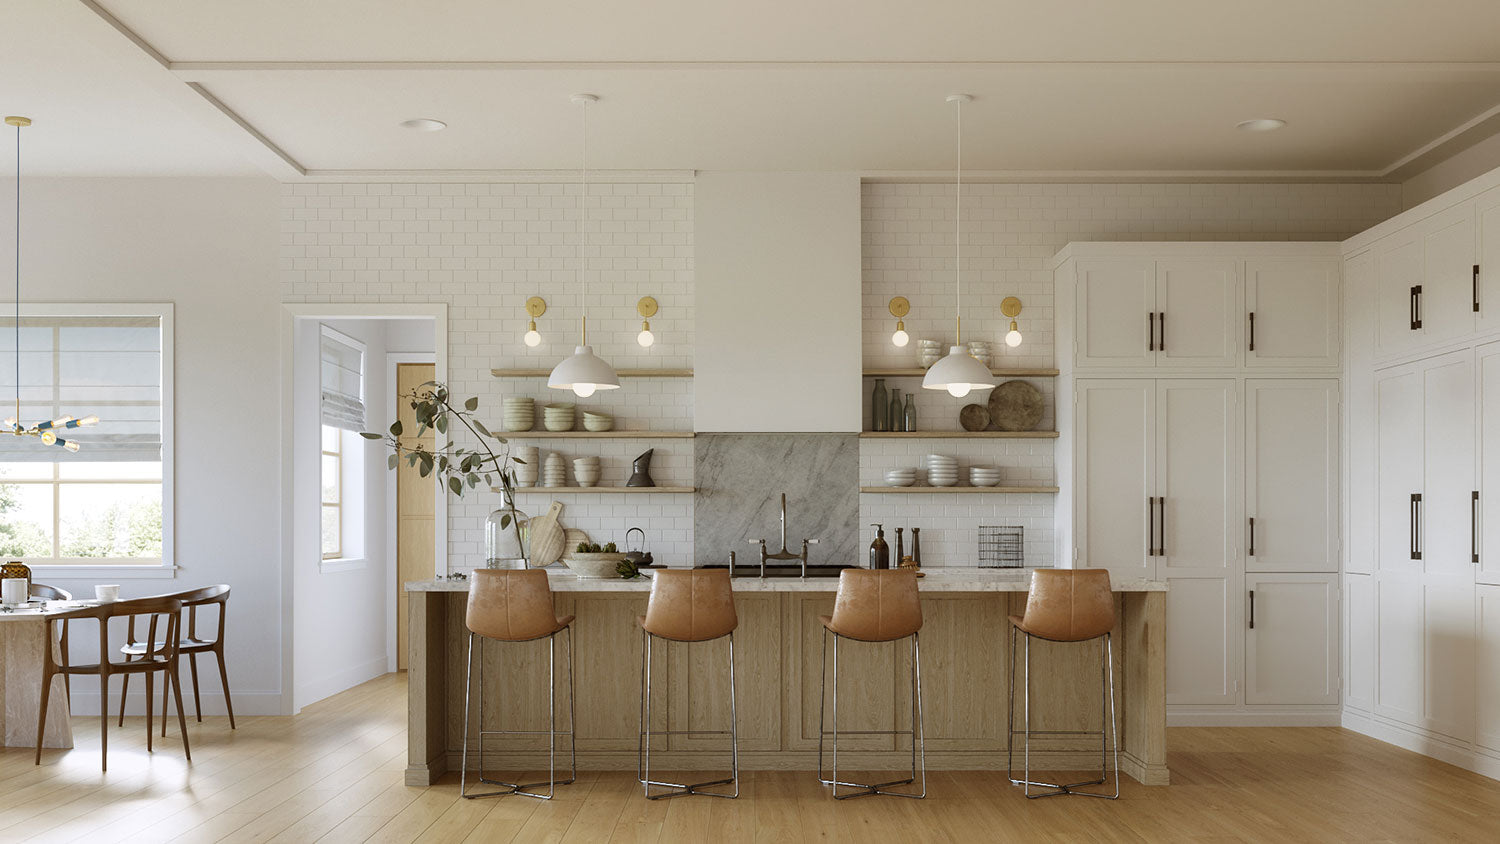 Kitchen Lighting For Open Spaces